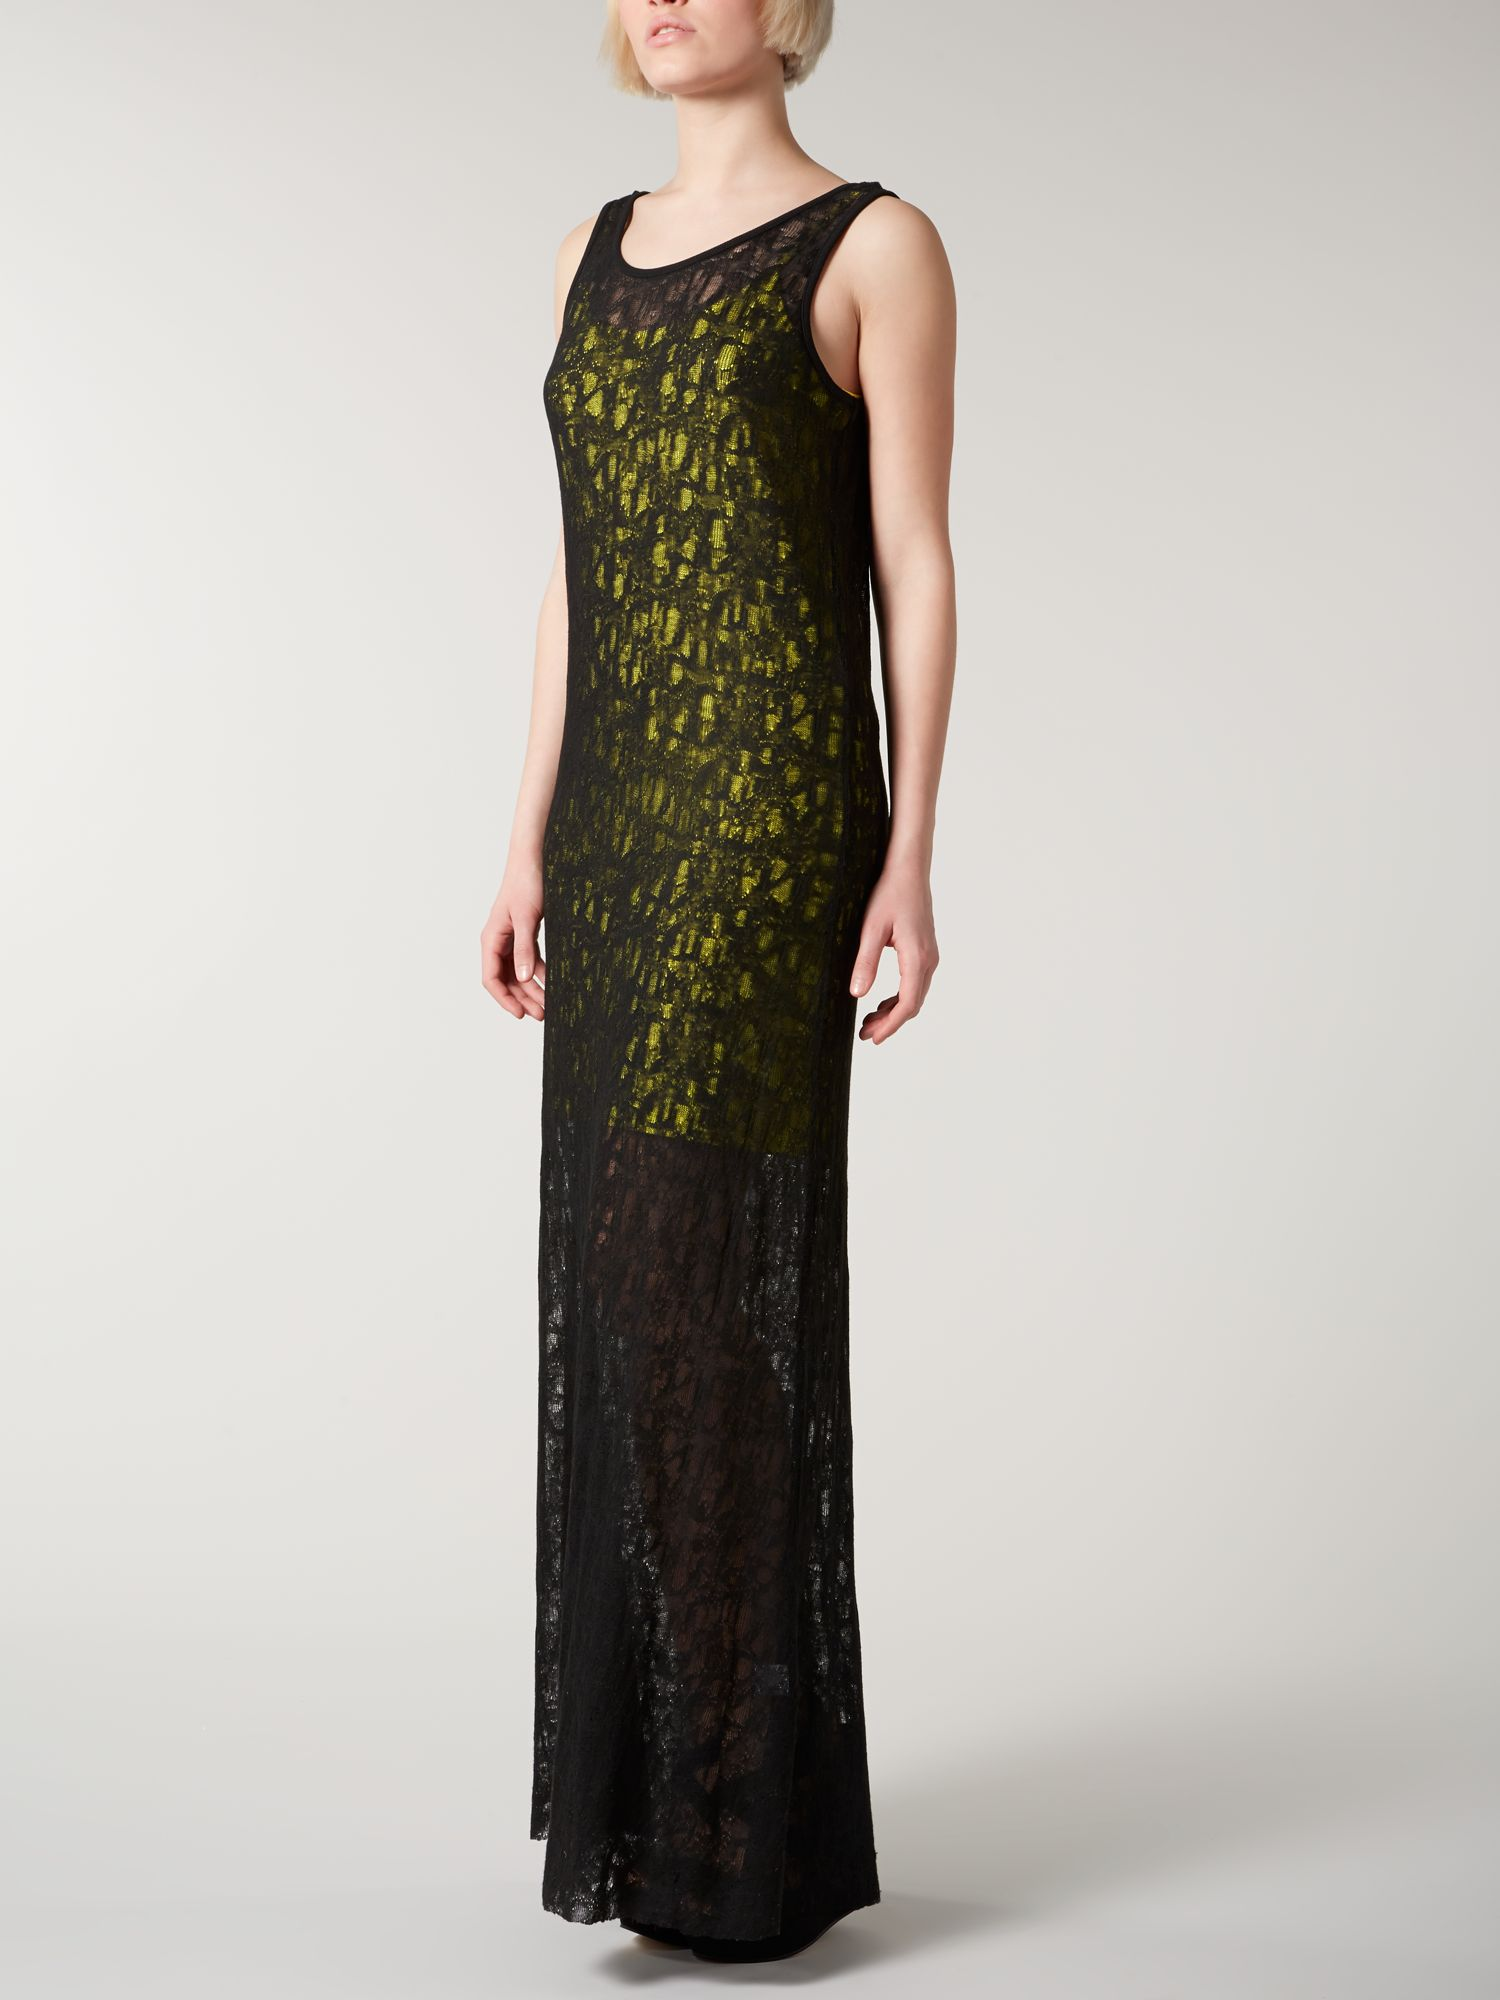 Cobweb maxi dress with contrast lining